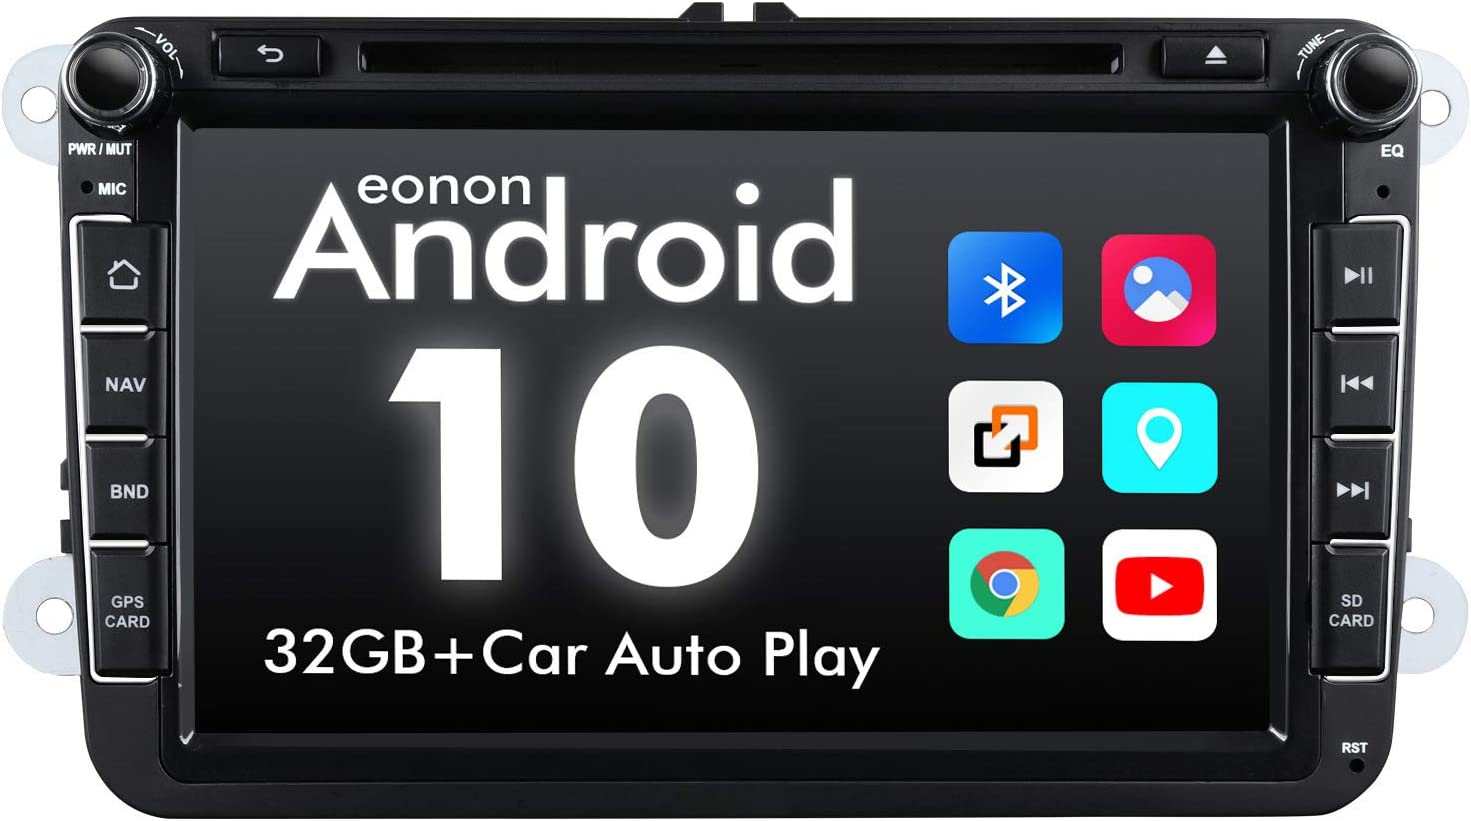 2020 Newest Android Car Stereo Android 10 Double Din, Eonon Car Radio for Volkswagen/SEAT/Skoda Compatible with Fender System Support Apple Carplay/Android Auto/Bluetooth/WiFi/Fast Boot-8 Inch-GA9453